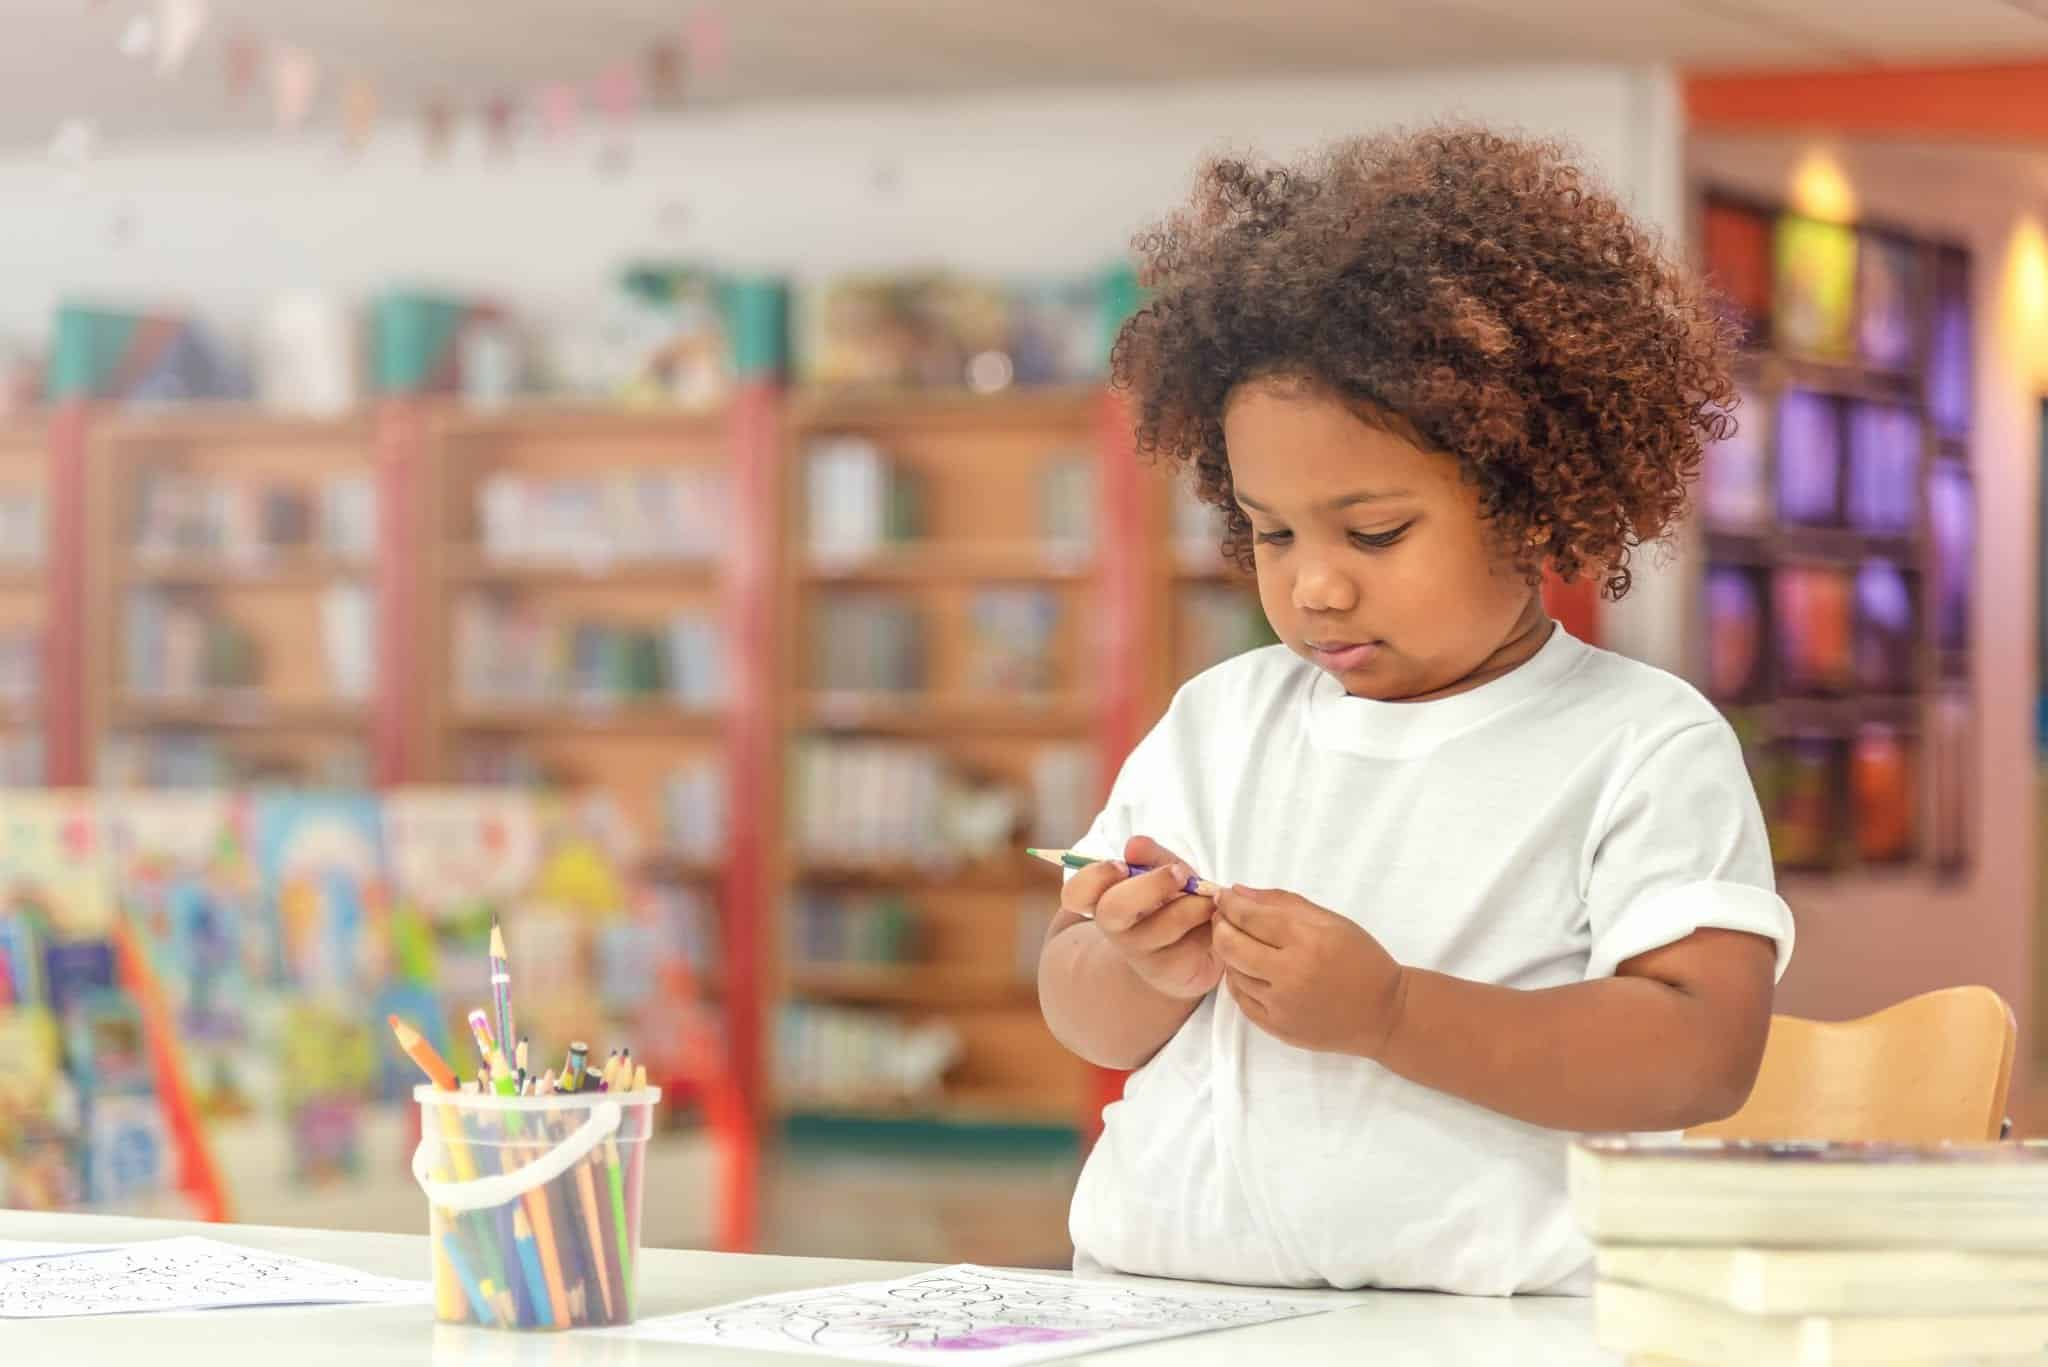 Valley Child Care & Learning Center - Top Rated Phoenix Preschool & Childcare Programs